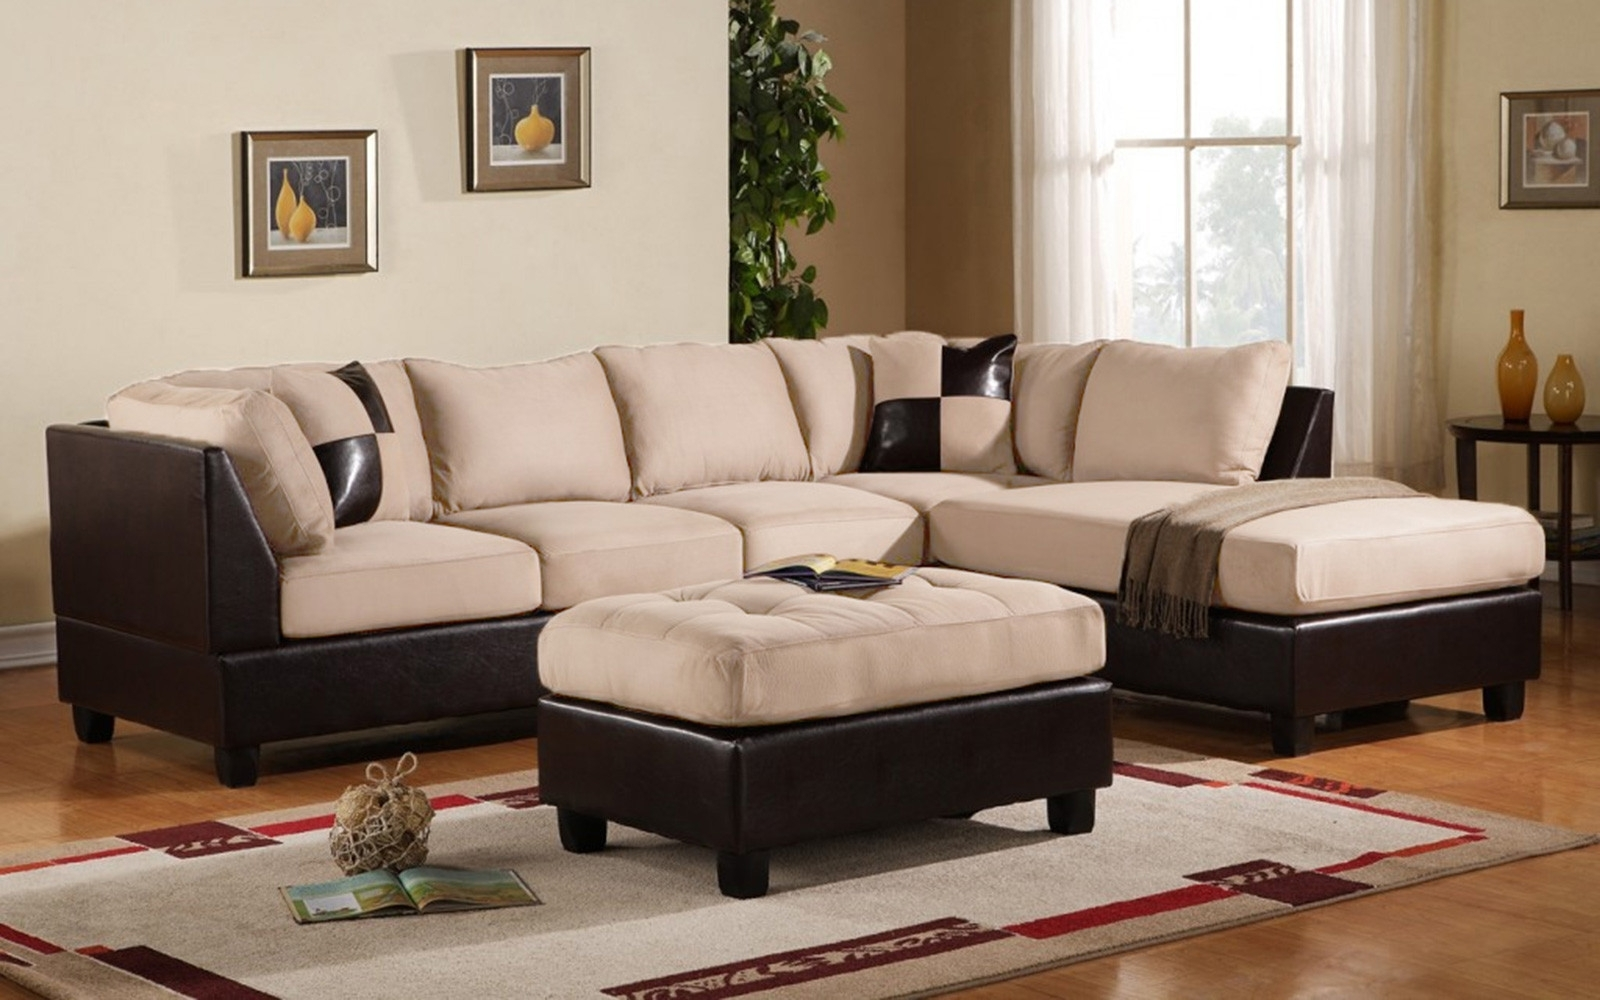 Modern Microfiber Sectional Sofas Pertaining To Most Current Faux Suede Sectional Sofa – Home And Textiles (View 10 of 20)